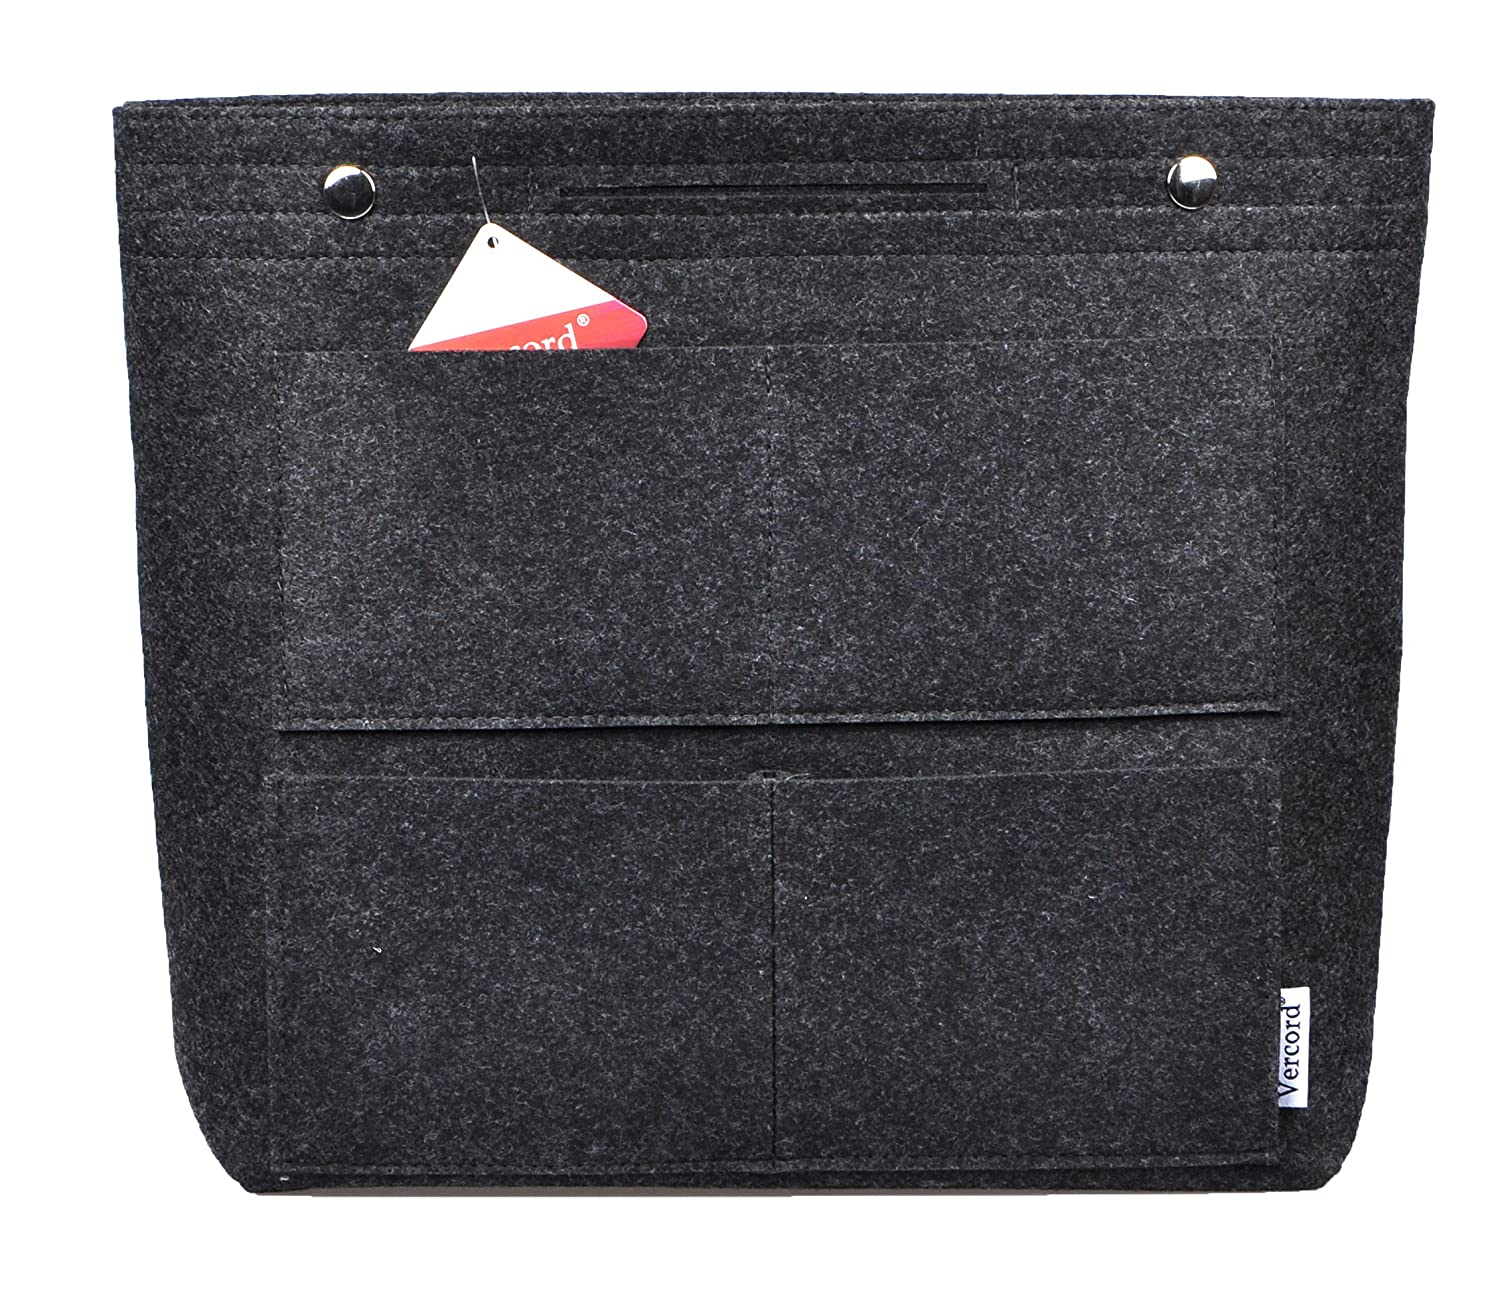 Vercord Long Large Felt Handbag Tote Purse Organizer Insert Liner Multi-Pocket Black SWSNB-045-Black